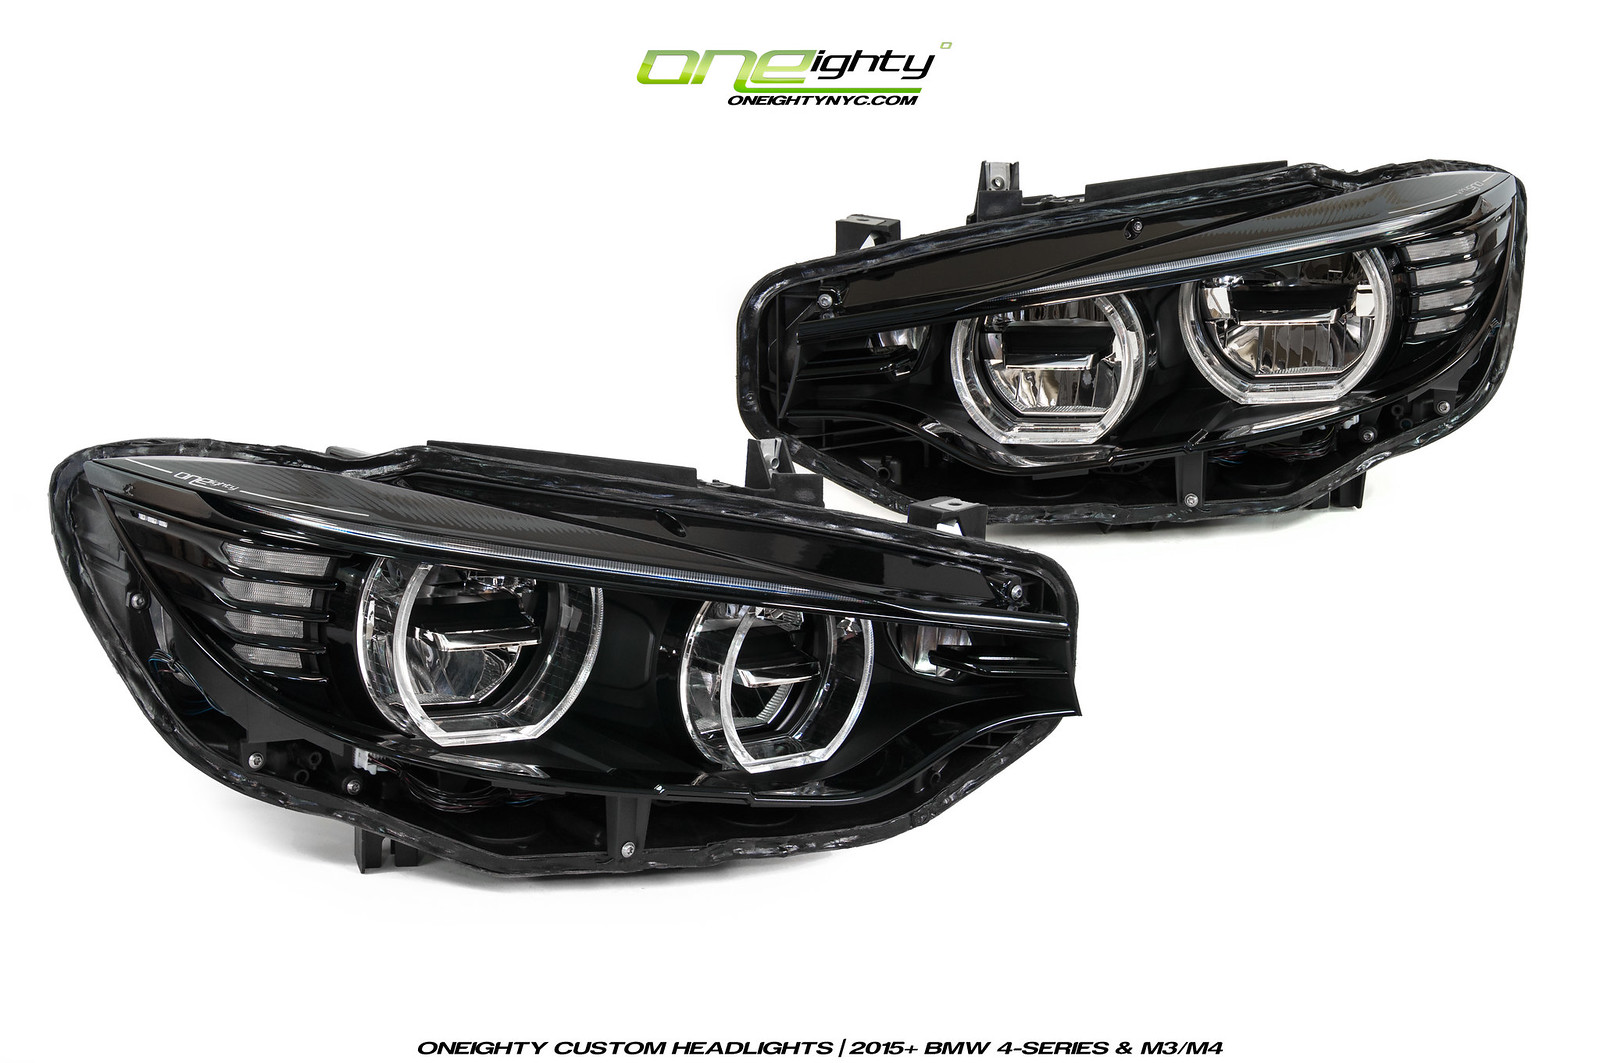 Oneighty Presents Blk Out M3 M4 Led Headlights